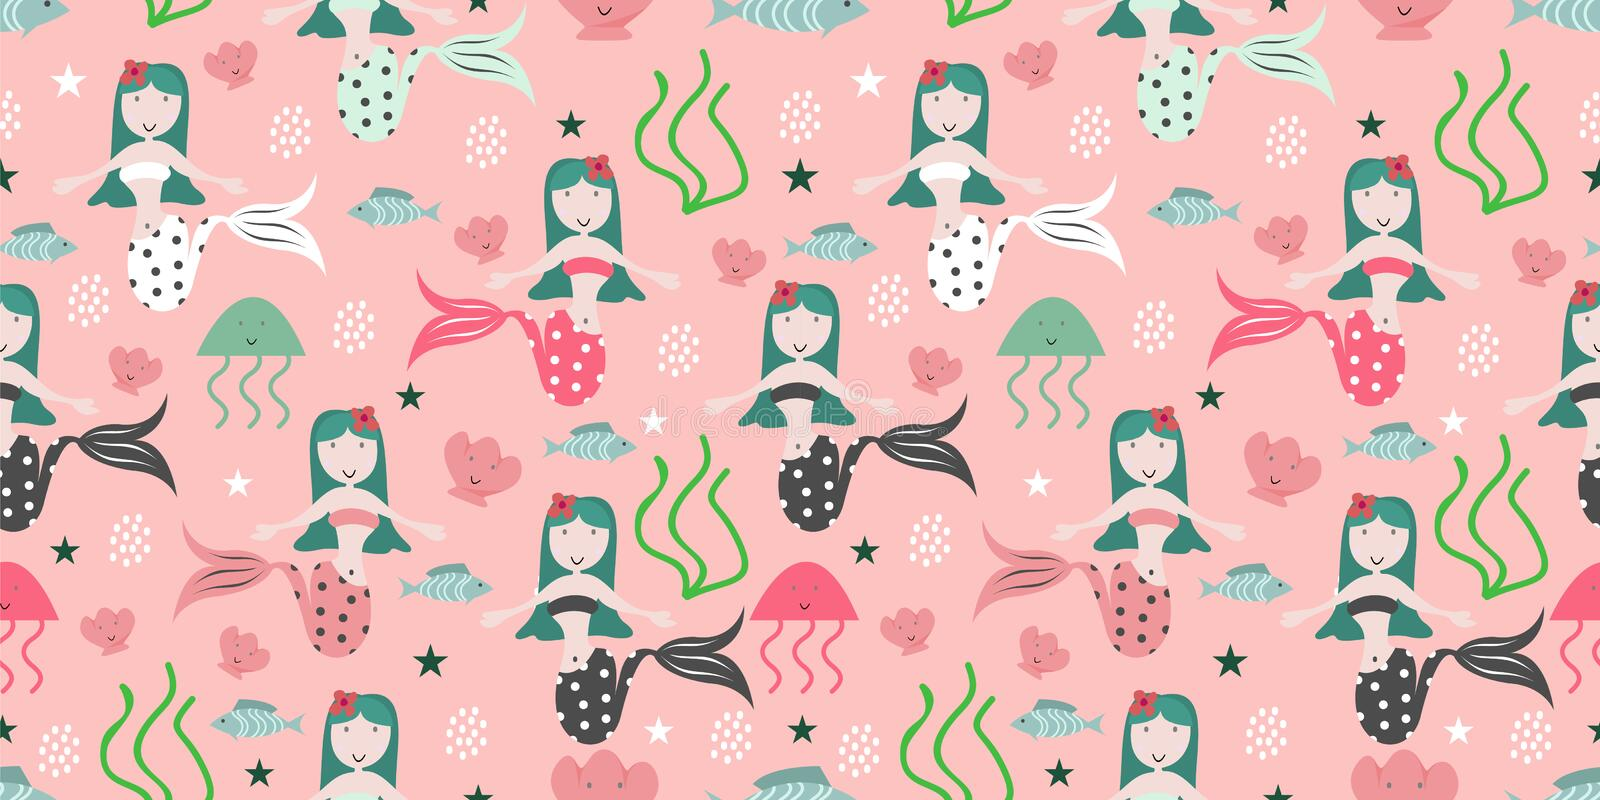 Seamless childish pattern with cute mermaids. Undersea vector illustration trendy texture. Perfect for fabric,textile,wrapping. Scandinavian style tail girl royalty free illustration